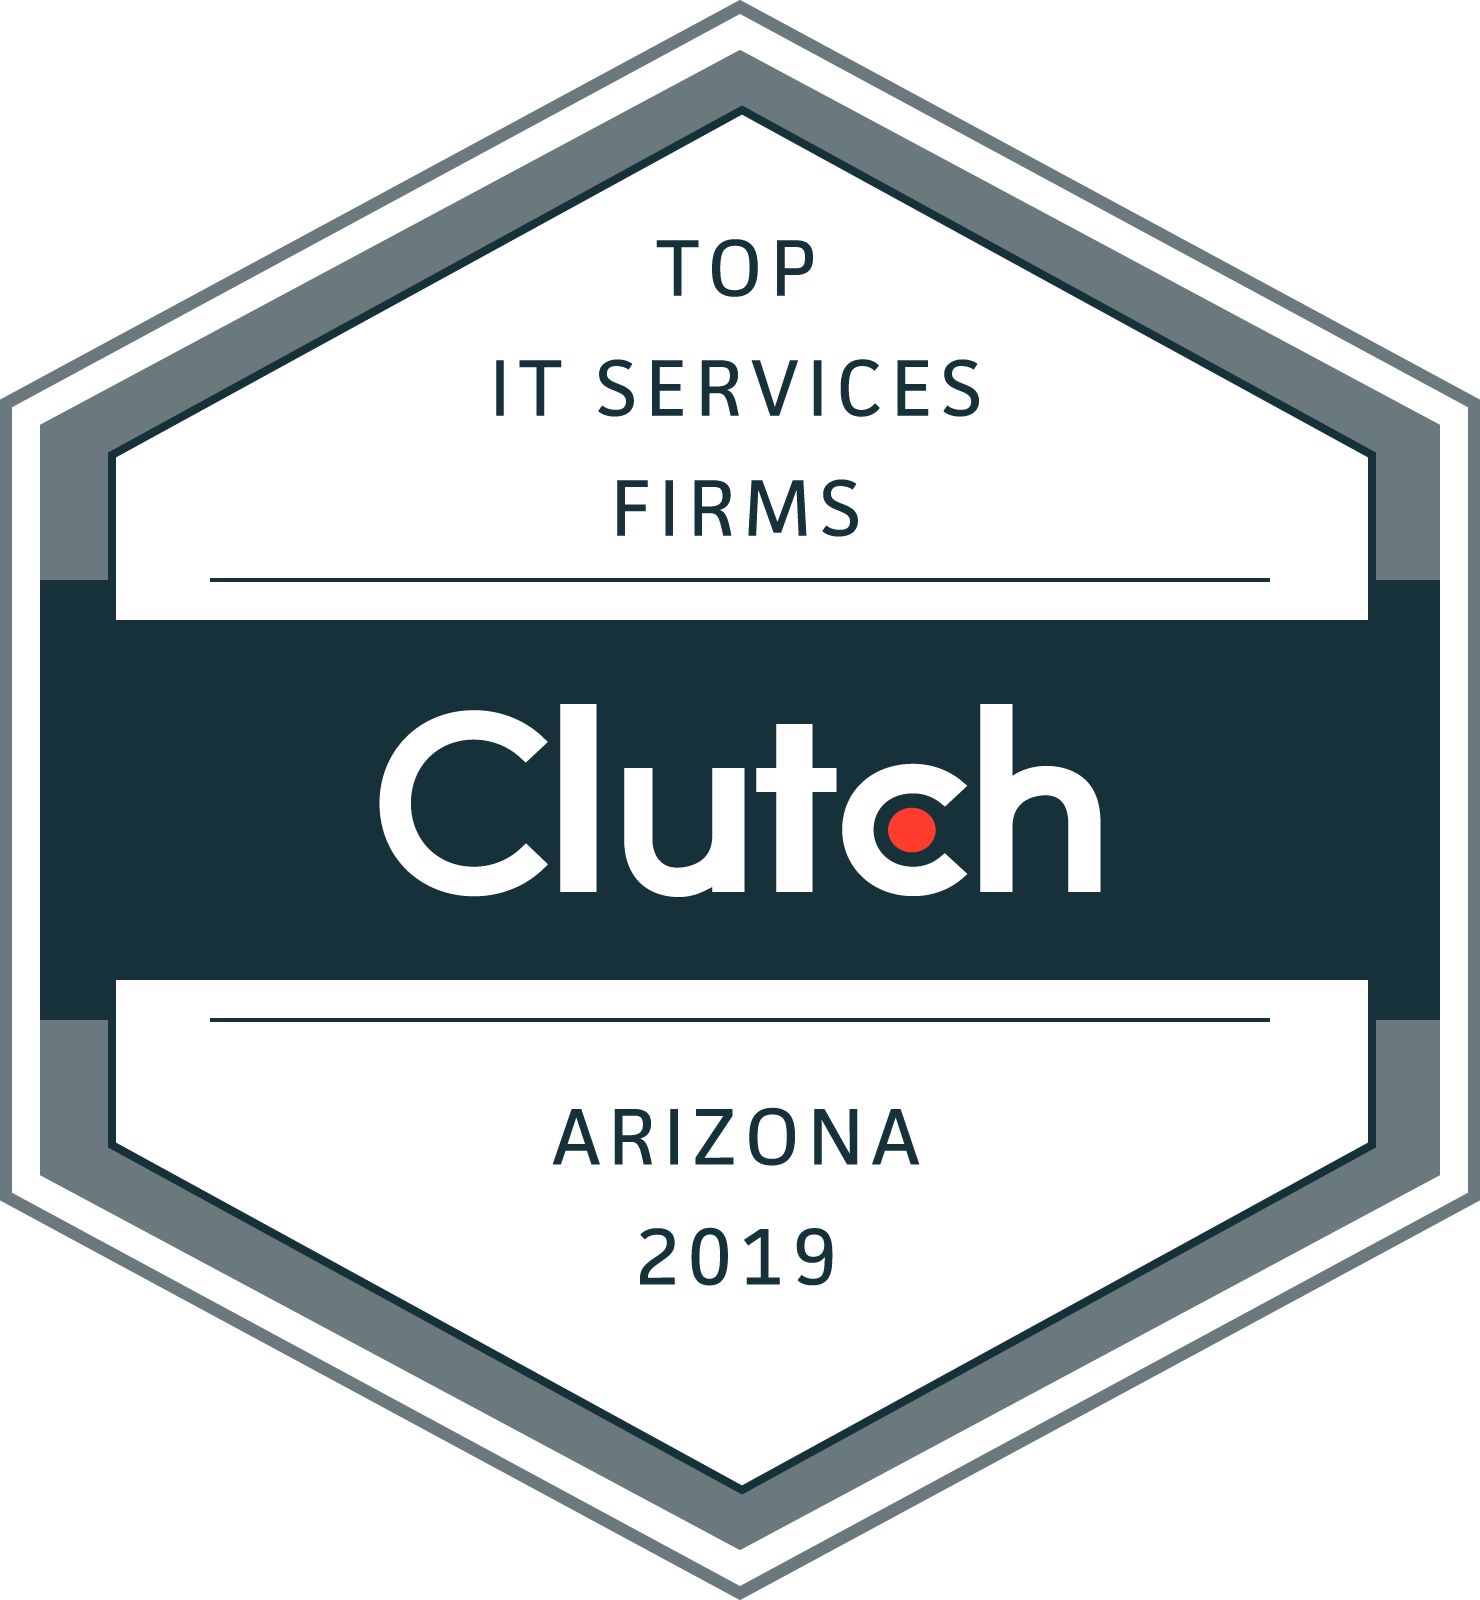 Active Bridge is Top IT Services Firm, Arizona